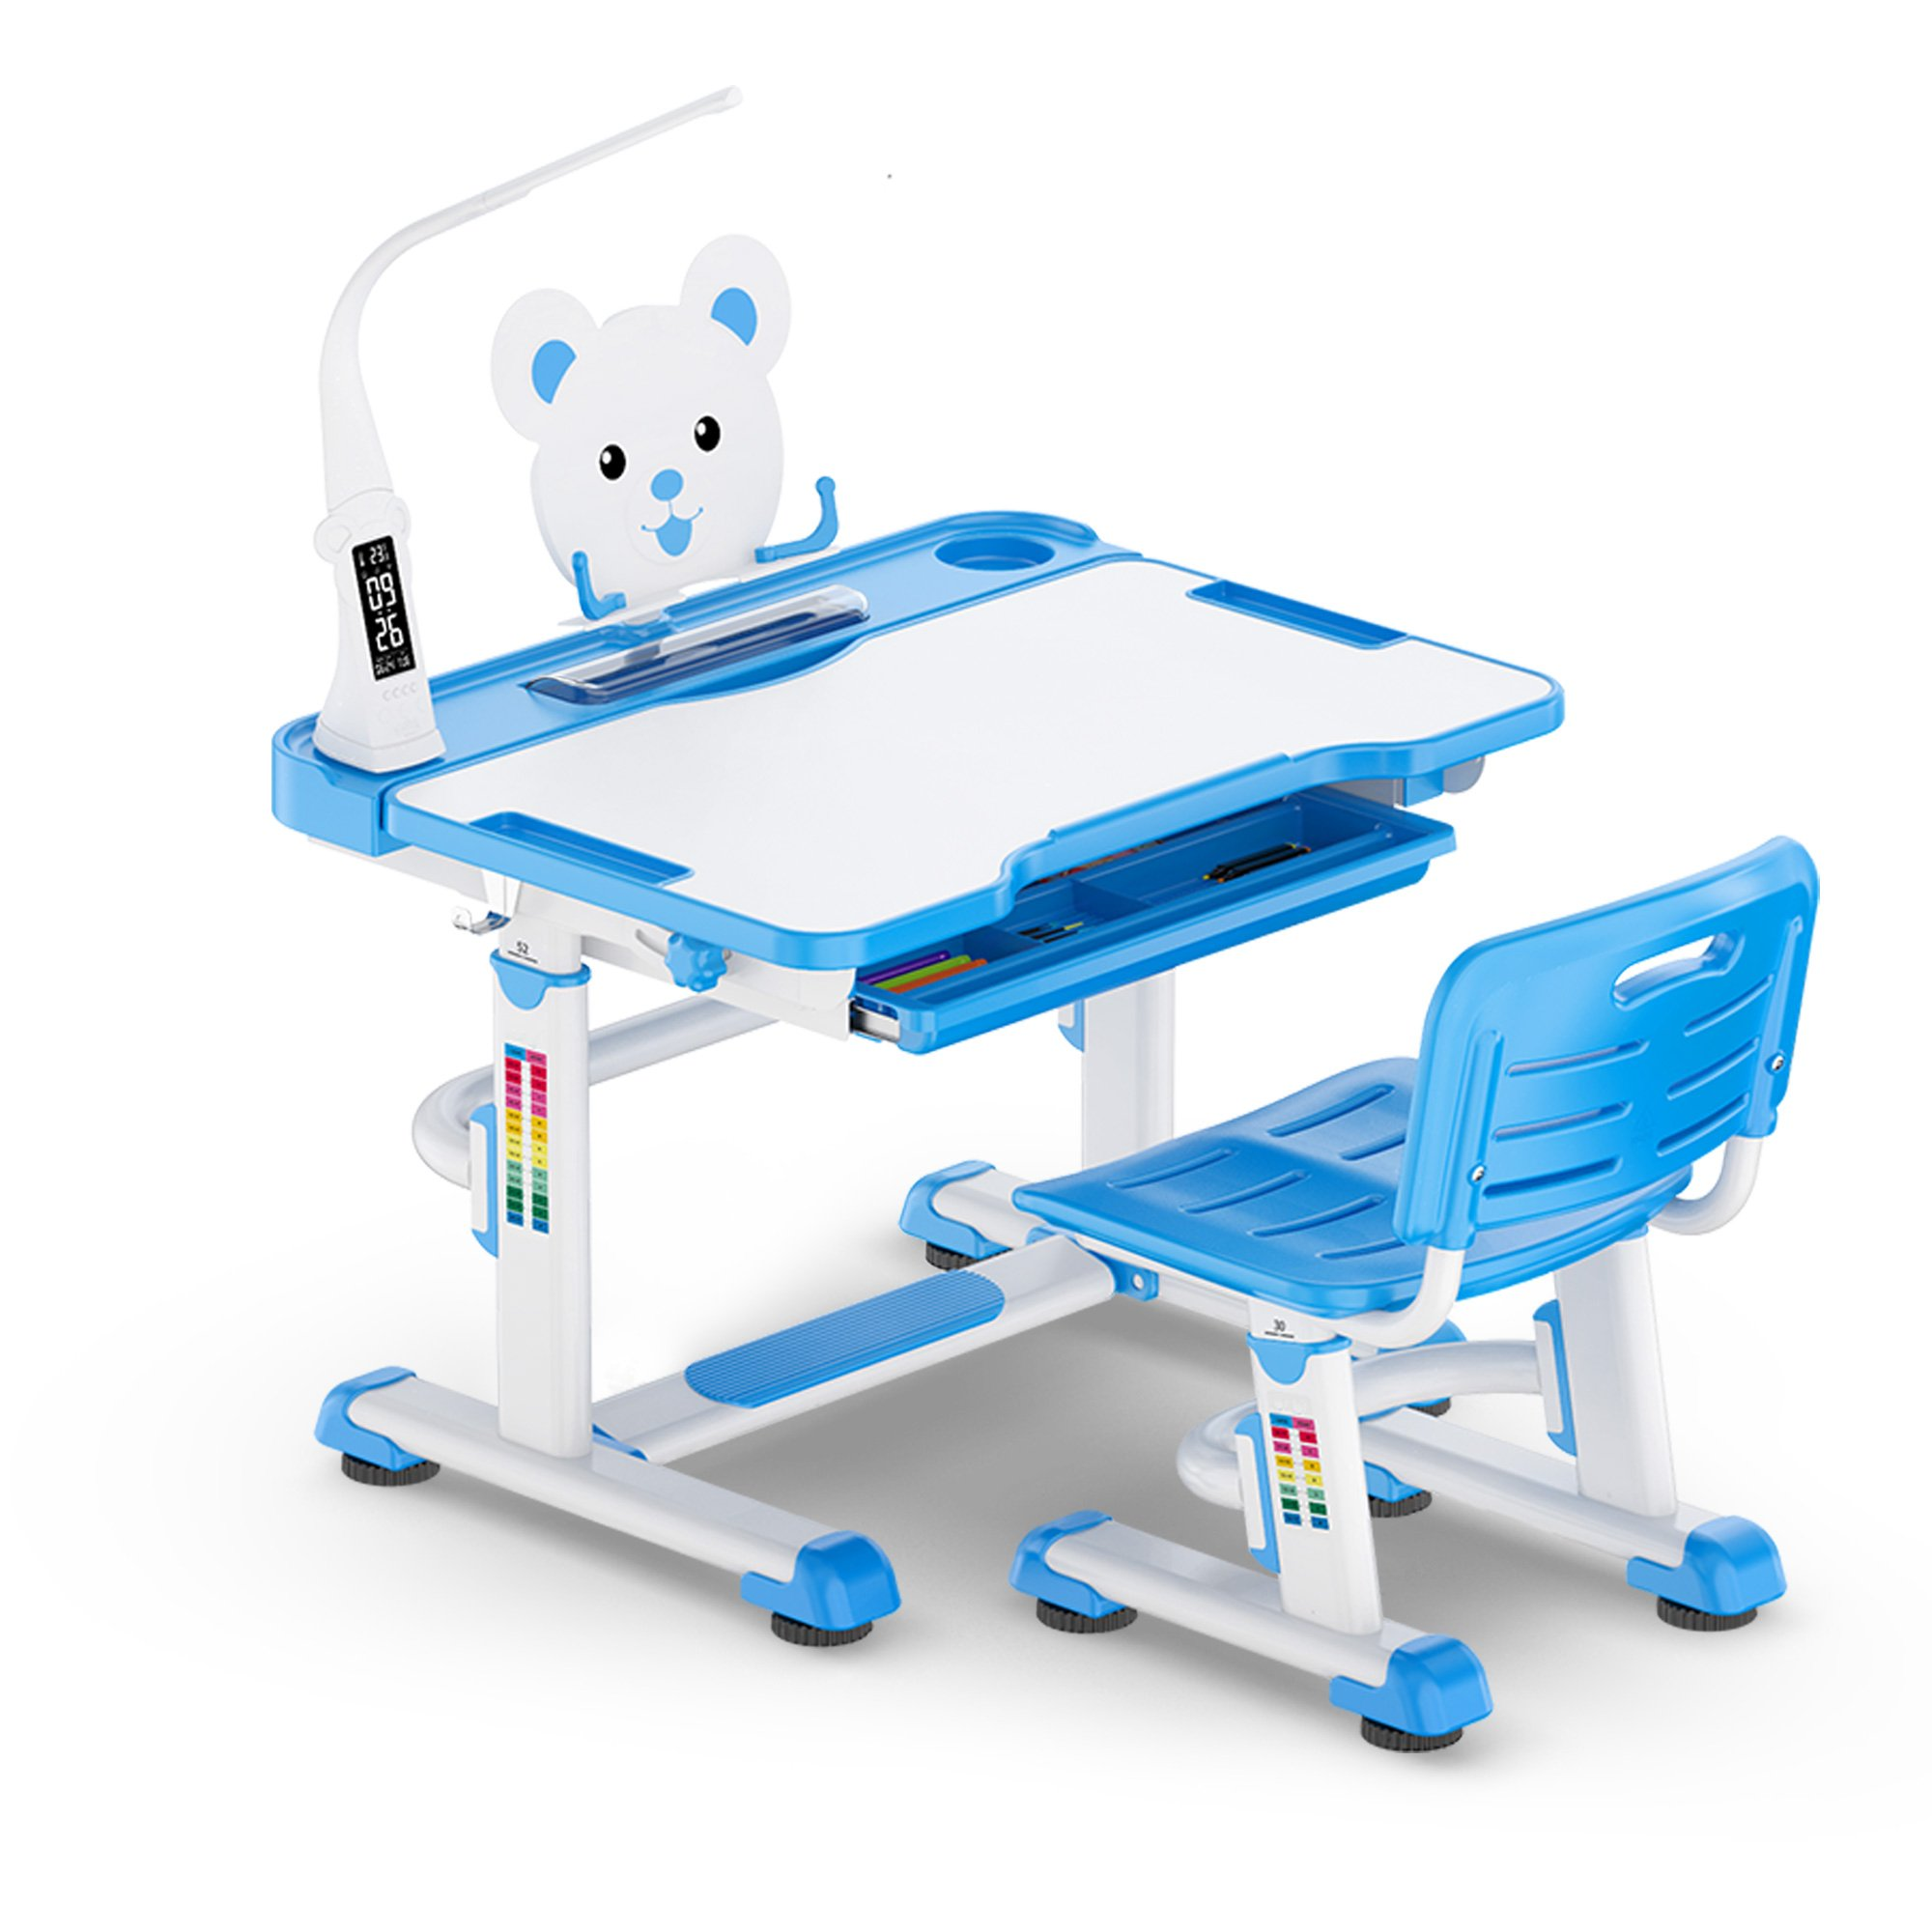 kids-study-desk-height-adjustable-desk-chair-sprite-blue-desk-2018-model